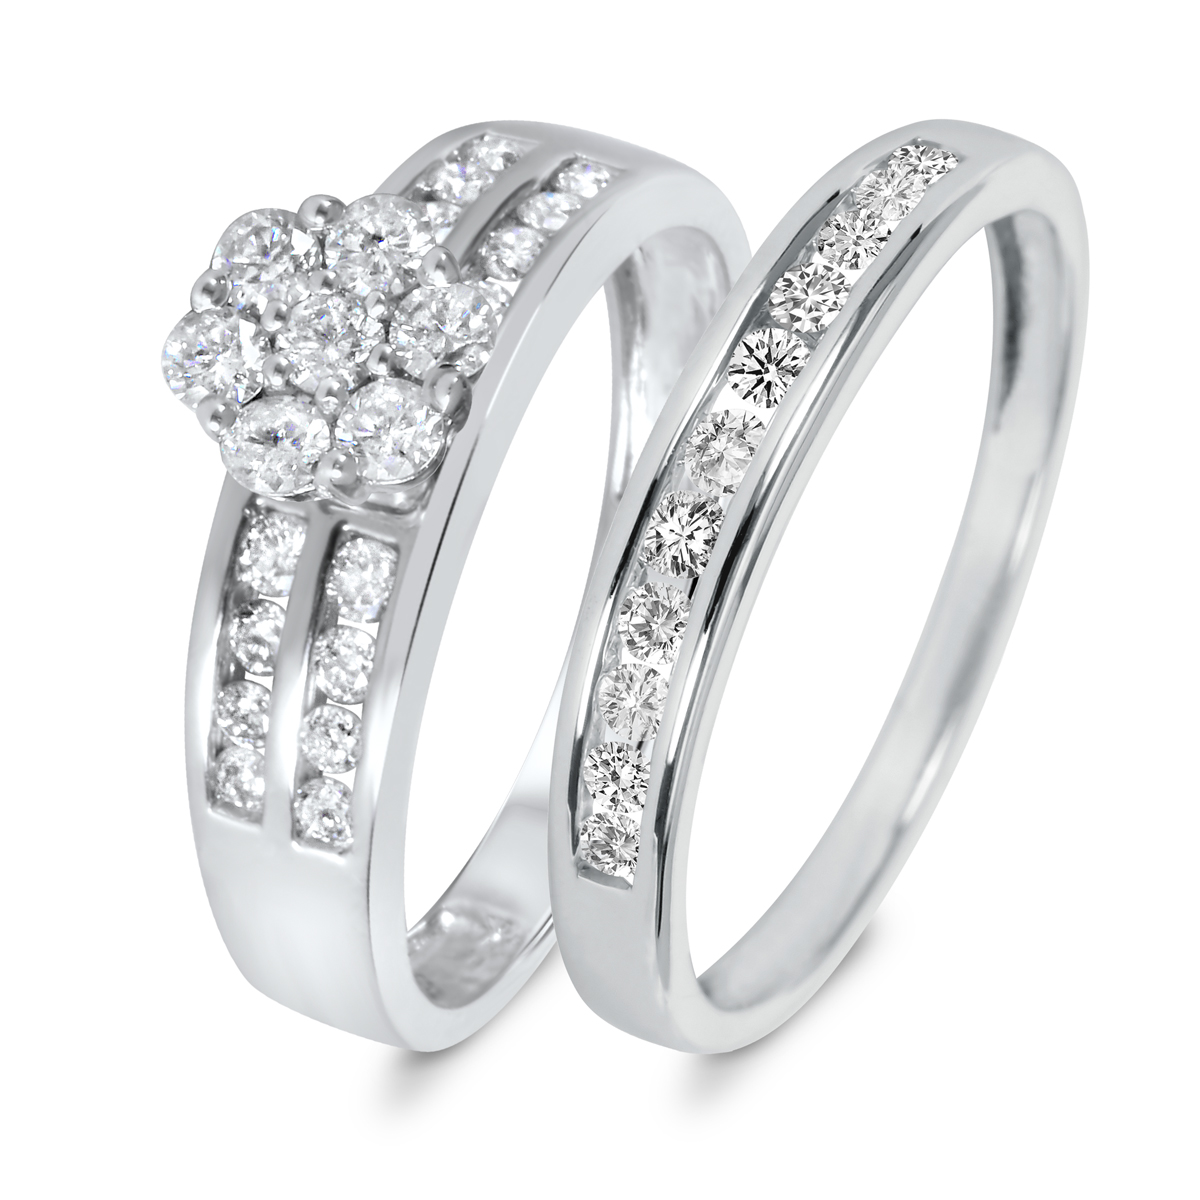 T W Diamond Women S Bridal Wedding Ring Set 10k White Gold